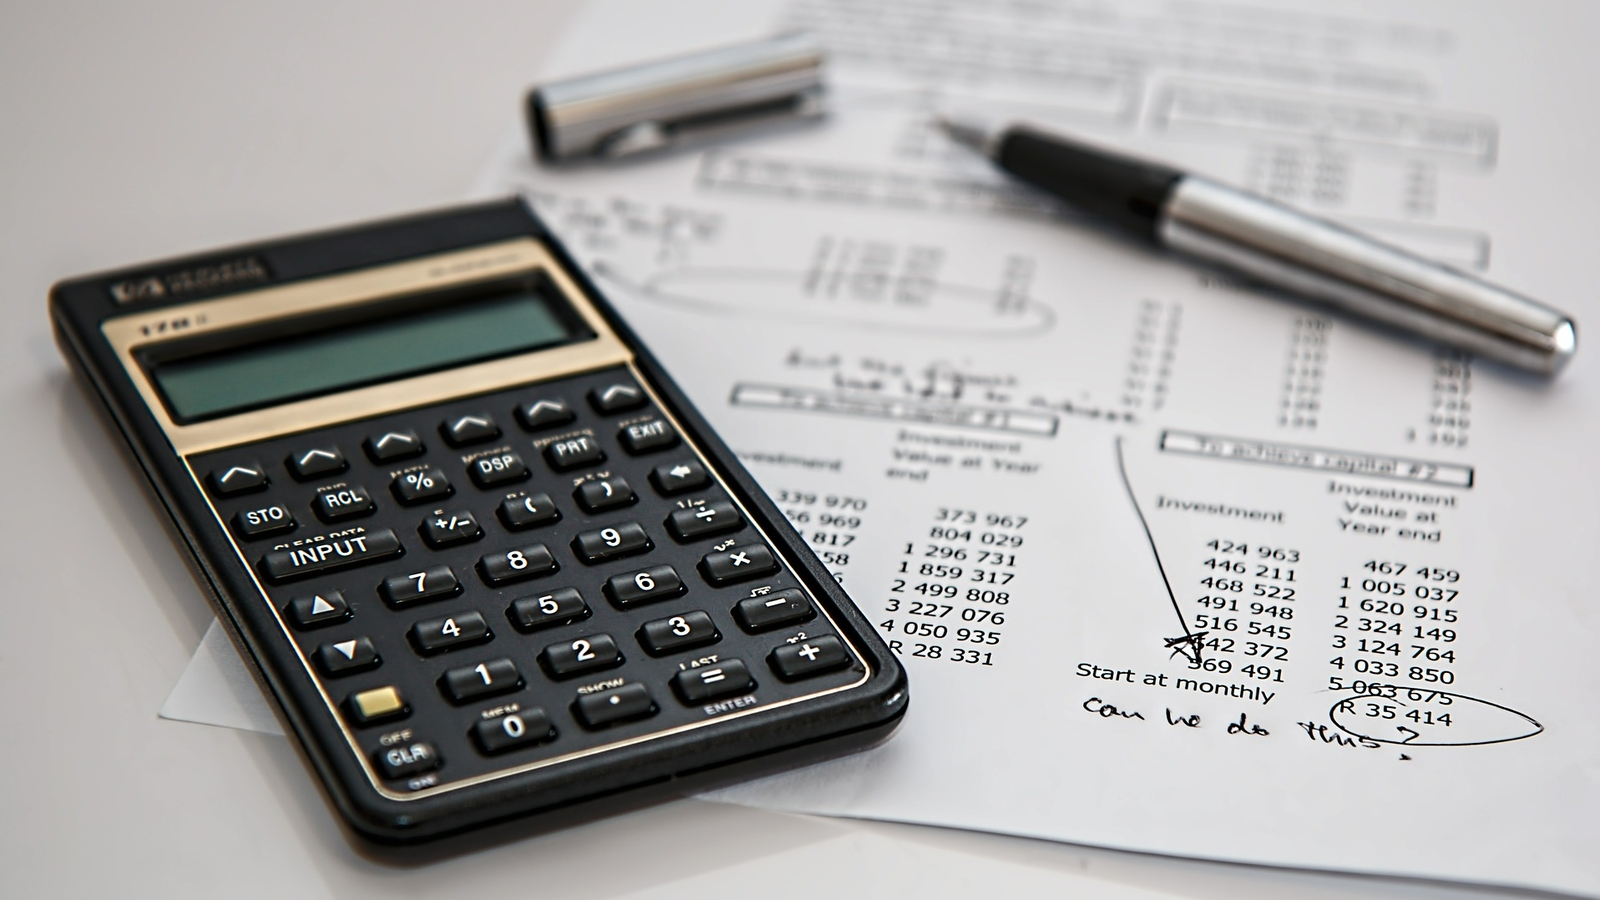 A photo of a calculator sitting on top of paper indicating a financial spreadsheet